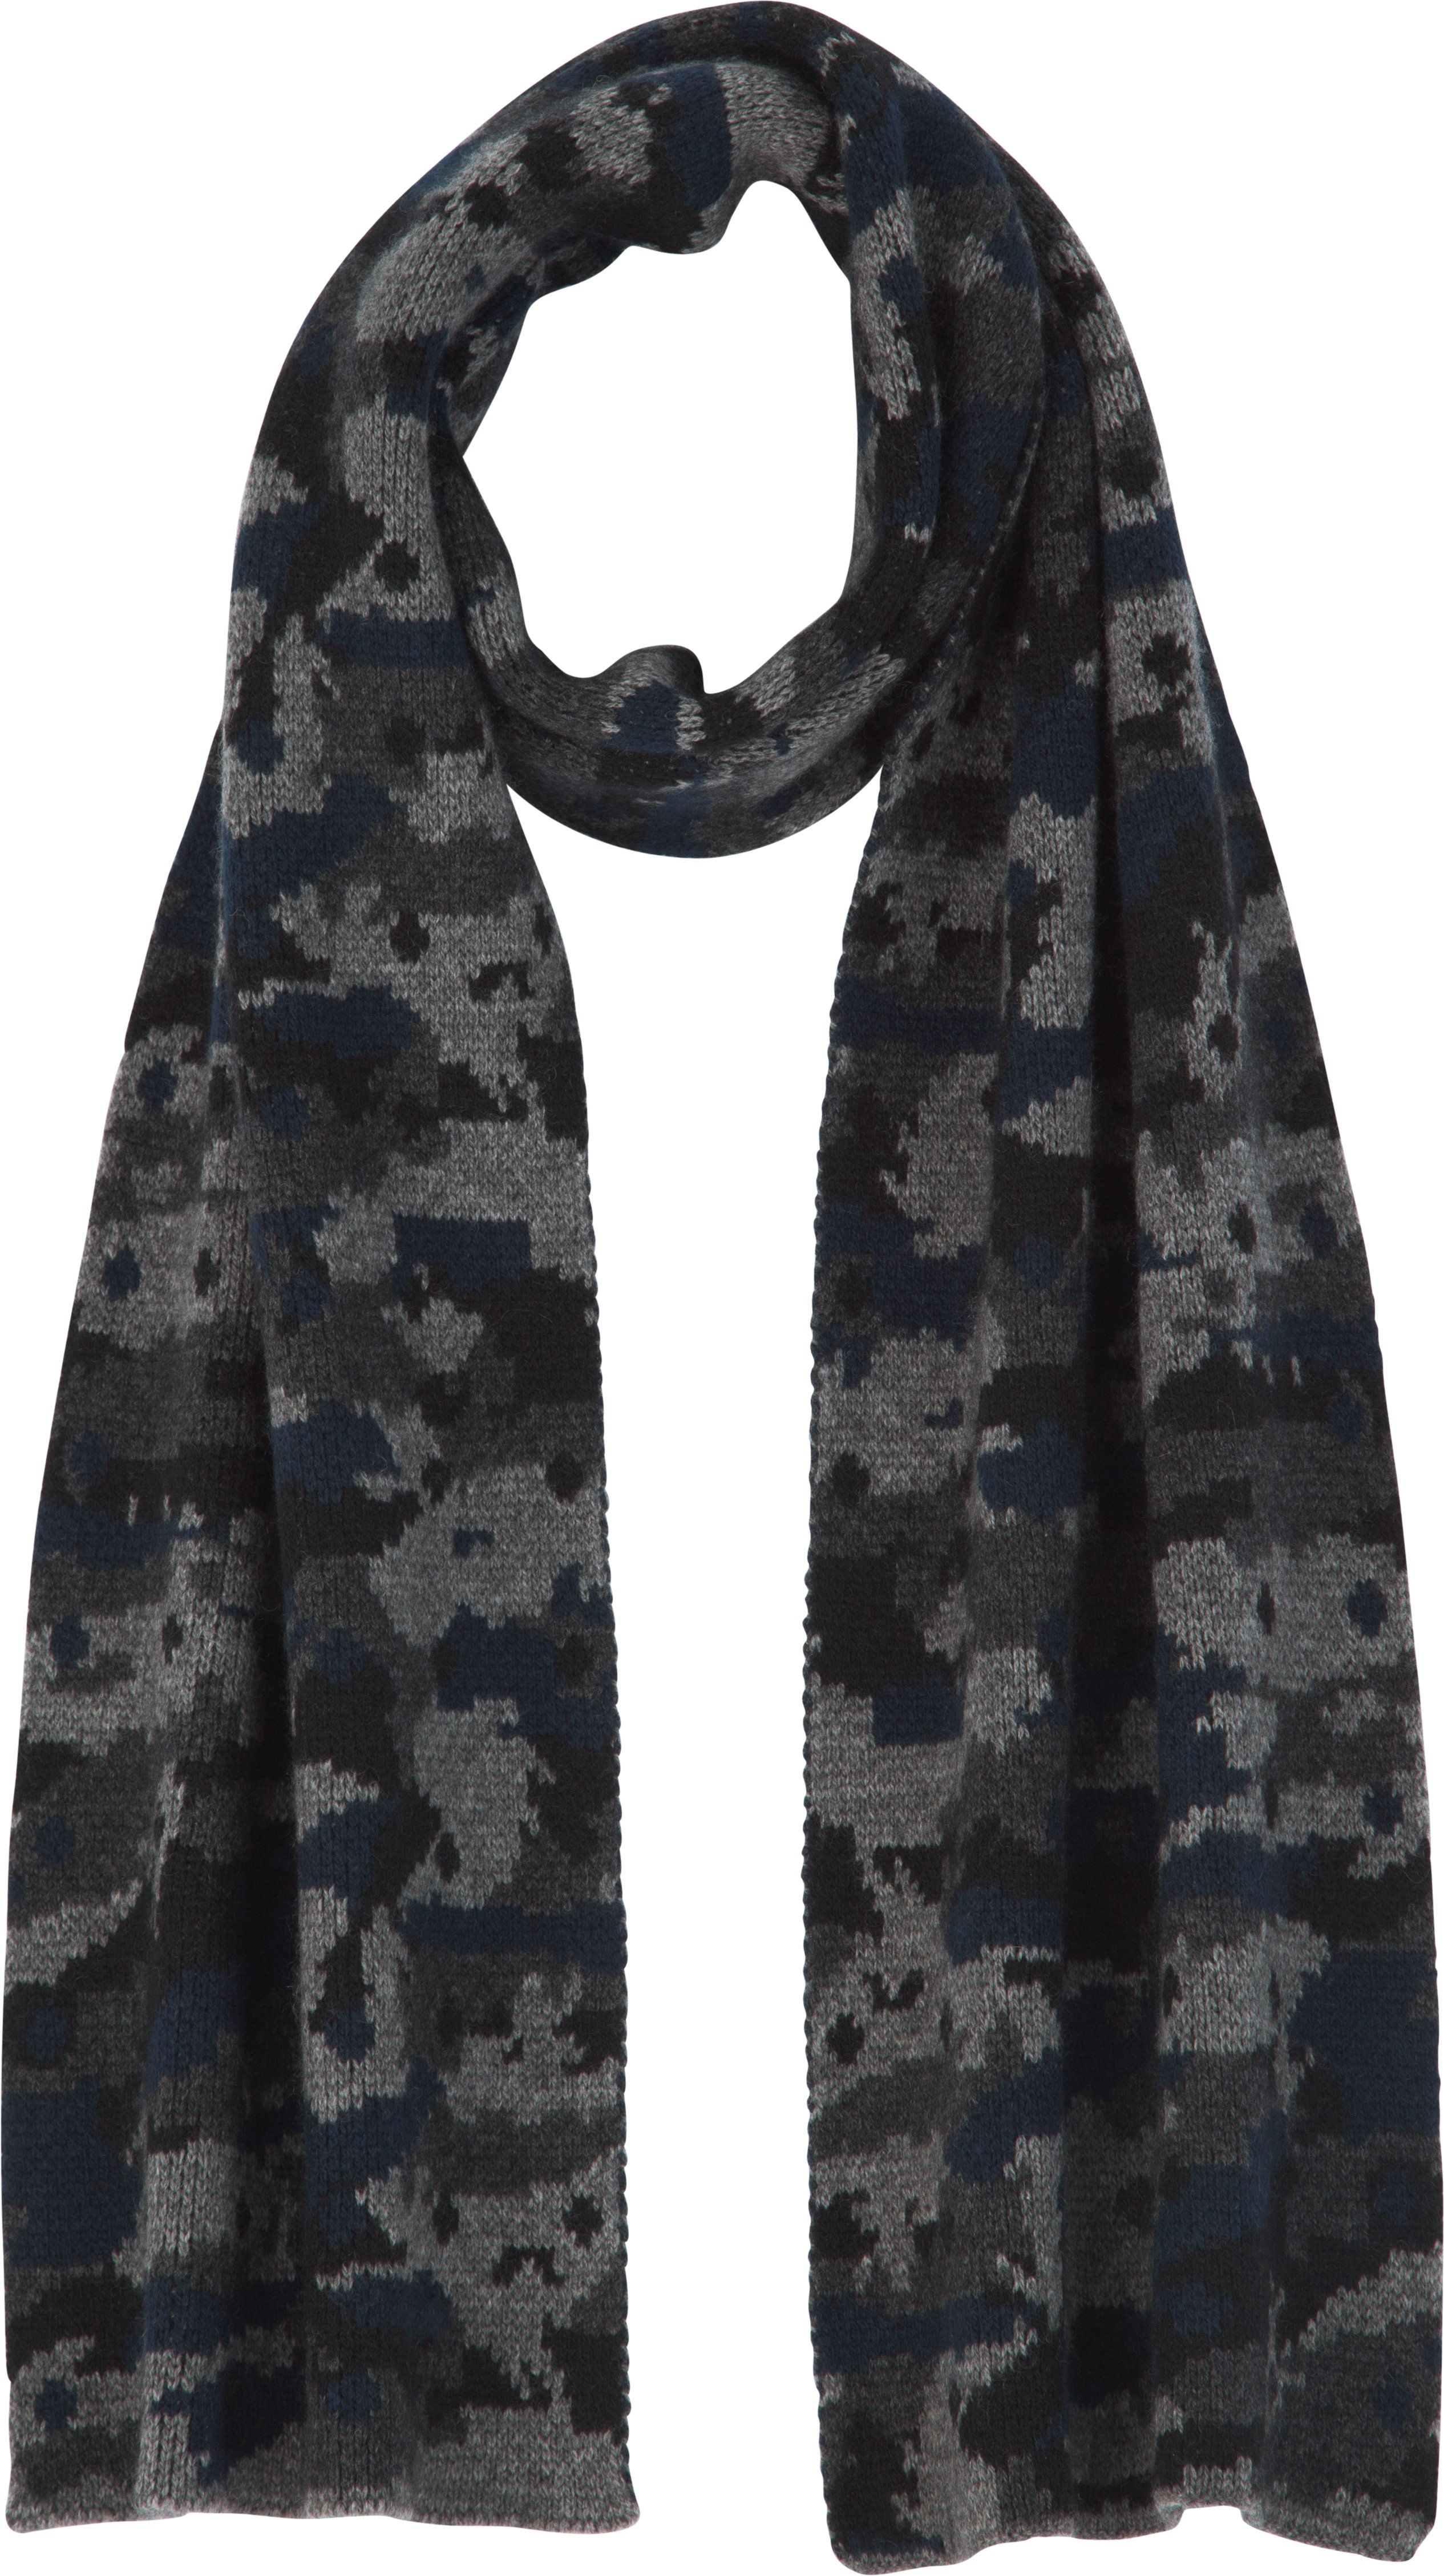 UAS Assembly Camo Knit Scarf, Navy, undefined